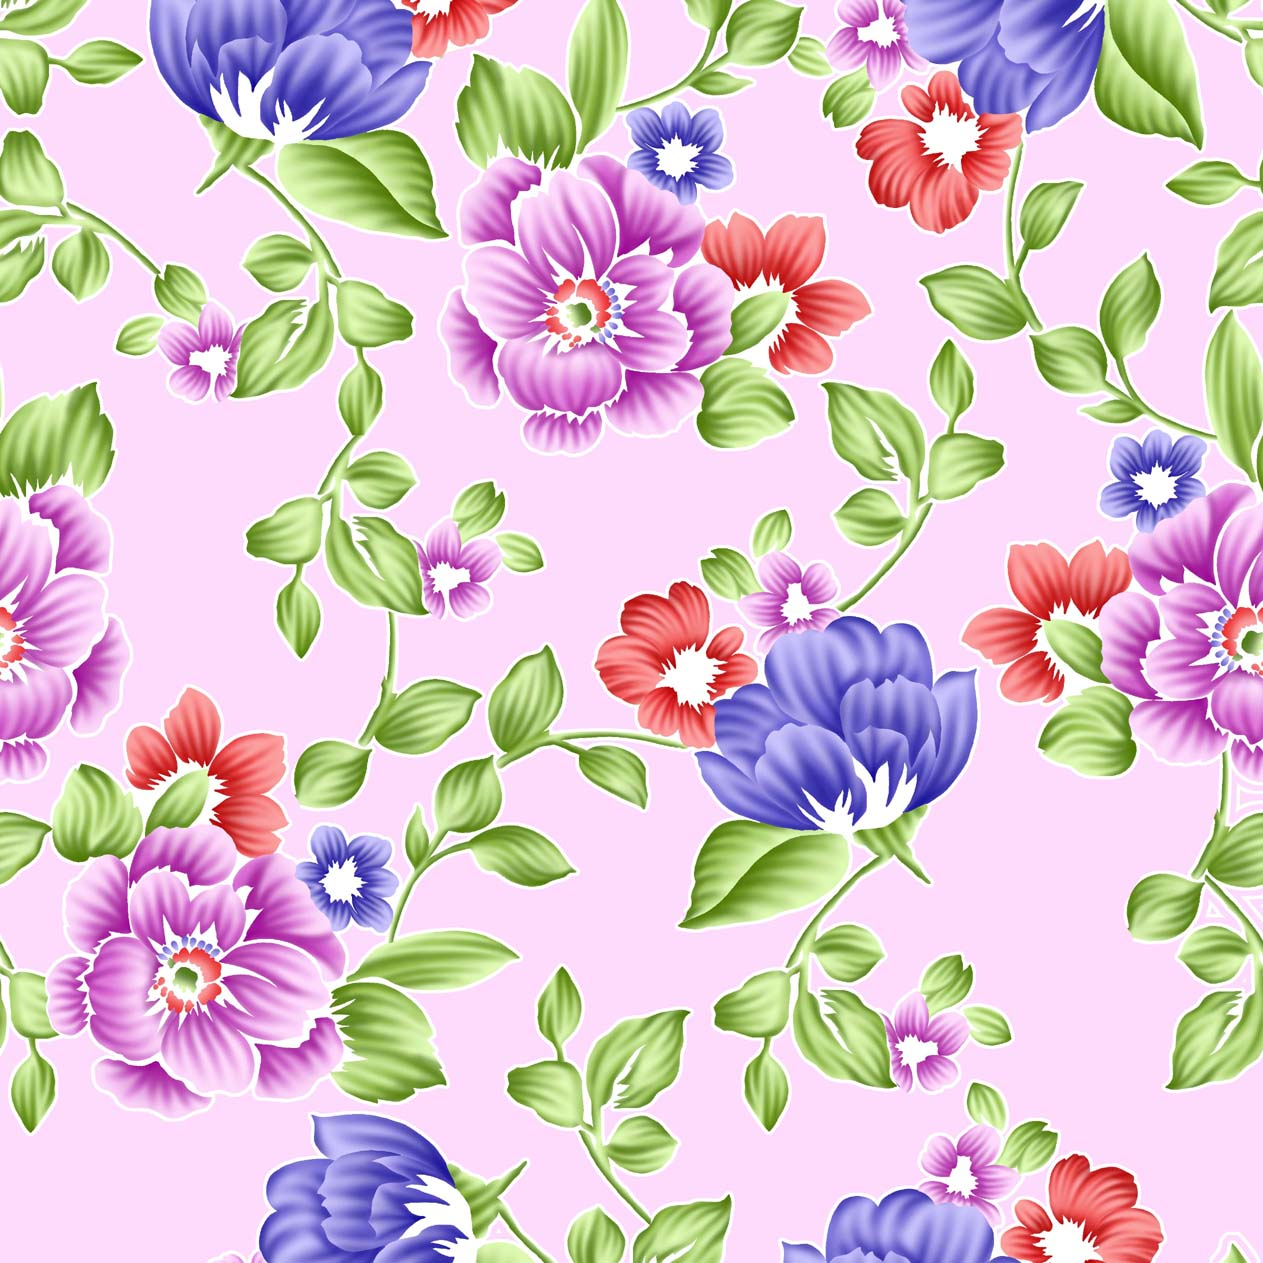 Fabric Painting Designs | Fabric Painting Patterns | Fabric Patterns |  Fabric Paint Designs | Fabric Pattern Design | Artist Fabric | Free Fabric  Designs ...